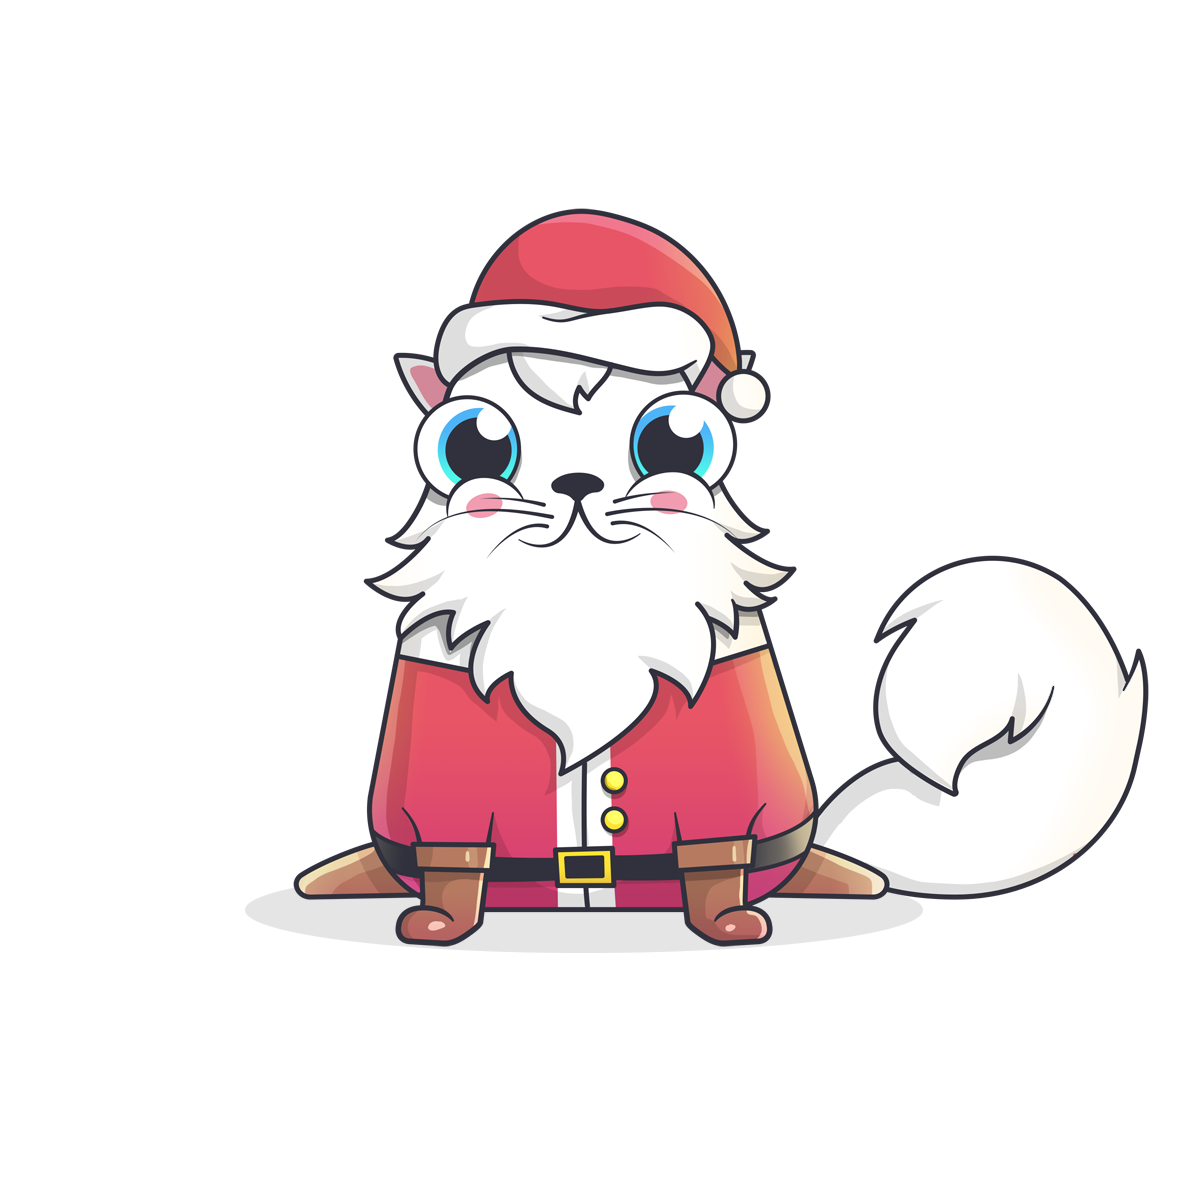 cryptokitty #546539